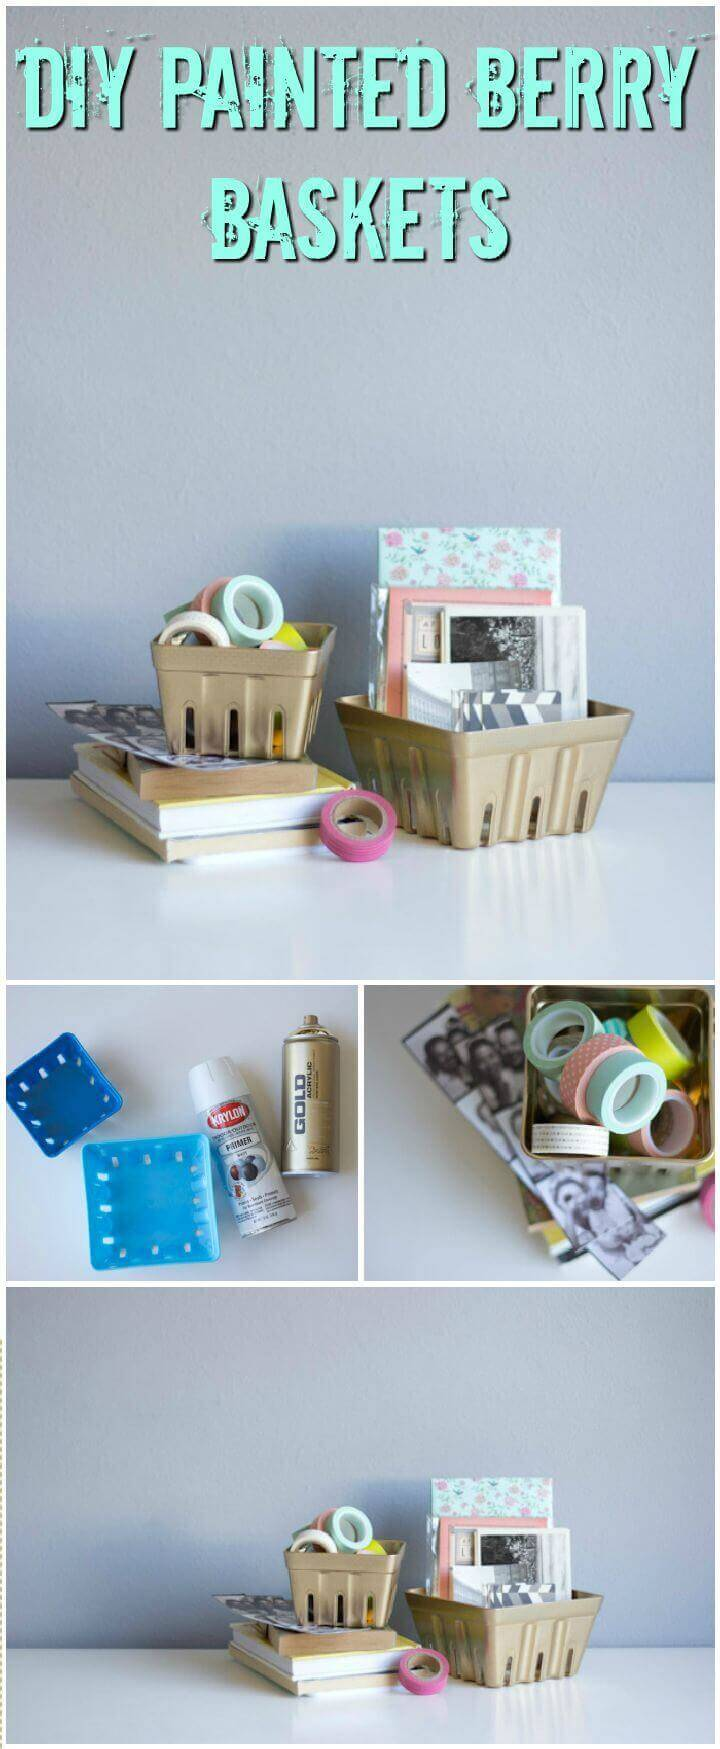 DIY Painted Berry Baskets